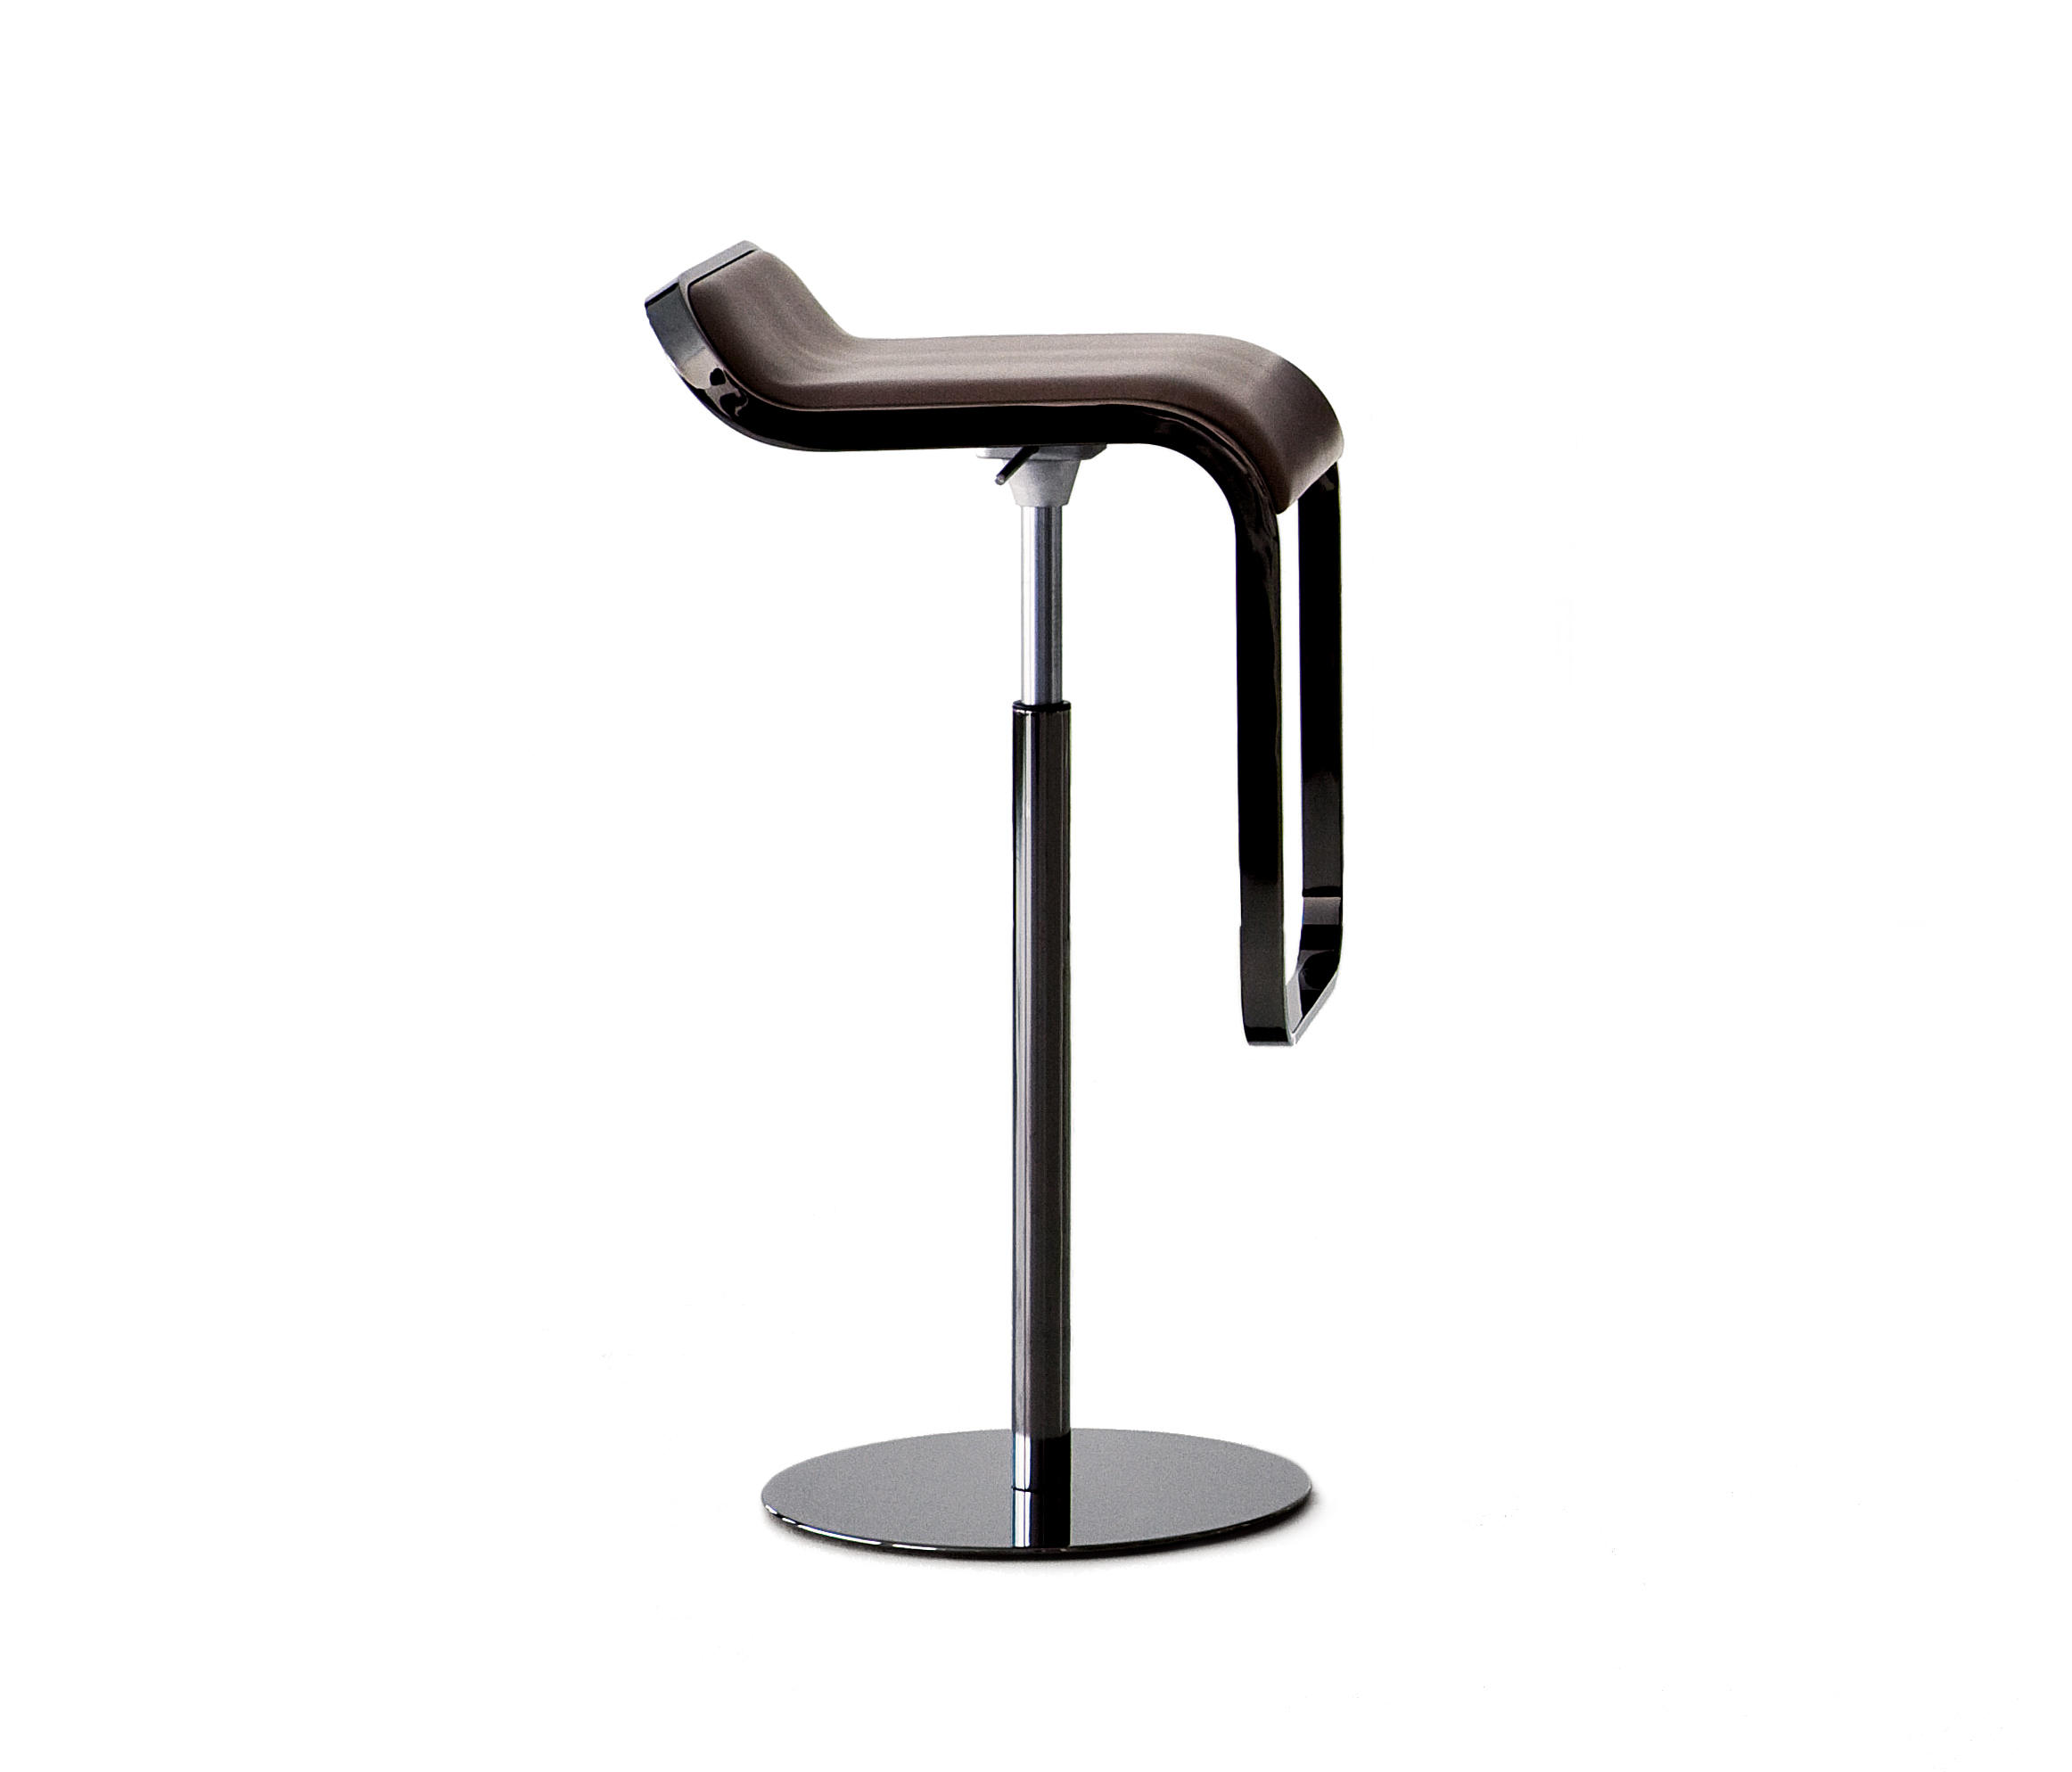 Lem bar stools from lapalma architonic for Lapalma lem